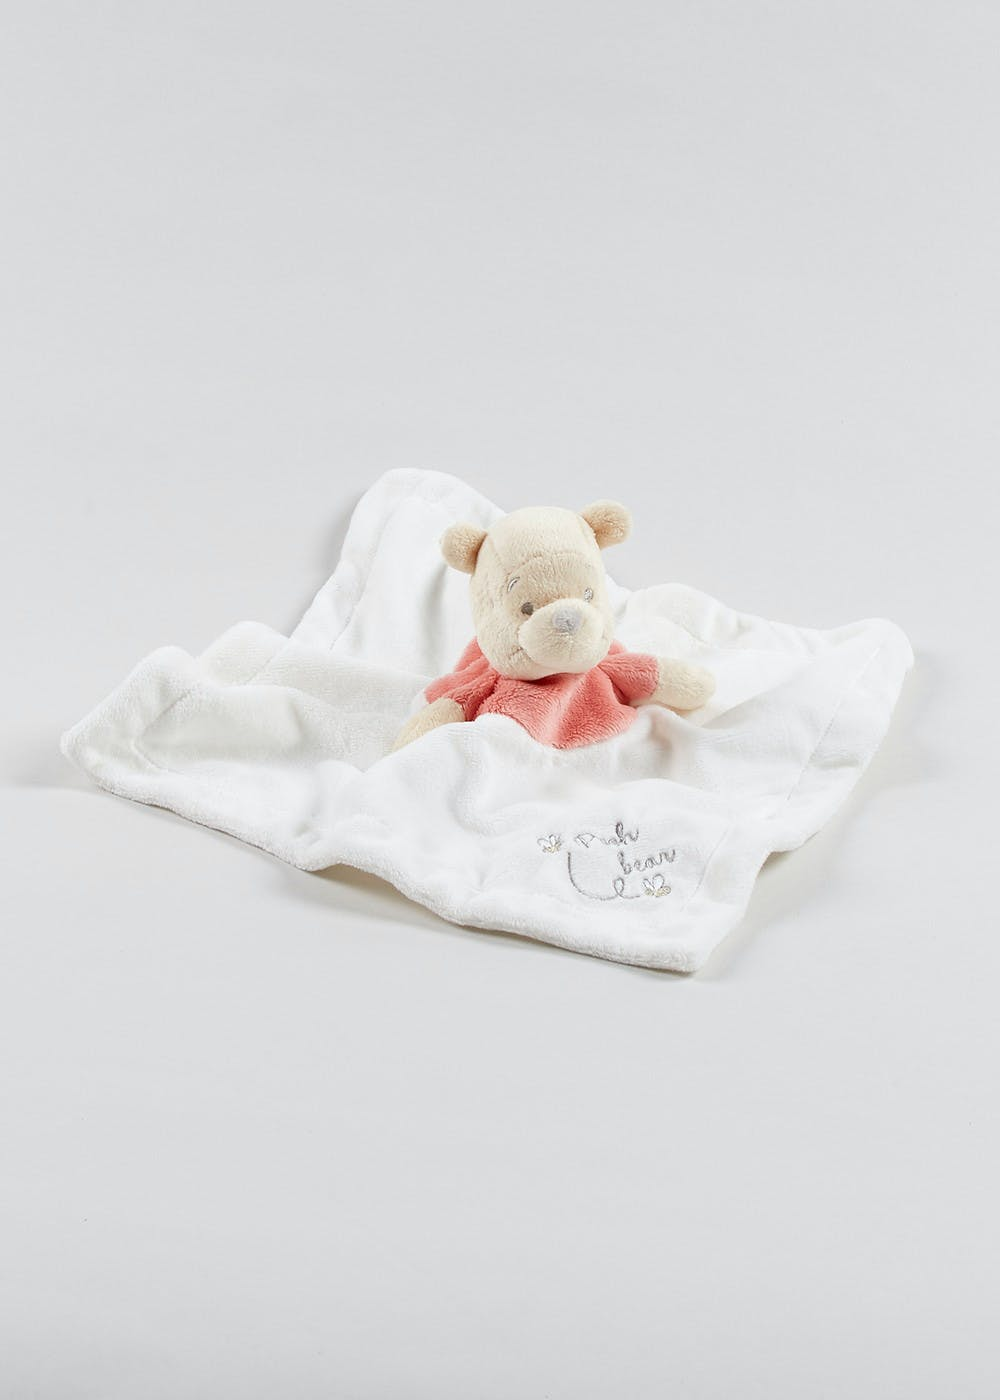 Winnie the pooh bathroom sets - Unisex Winnie The Pooh Comforter One Size